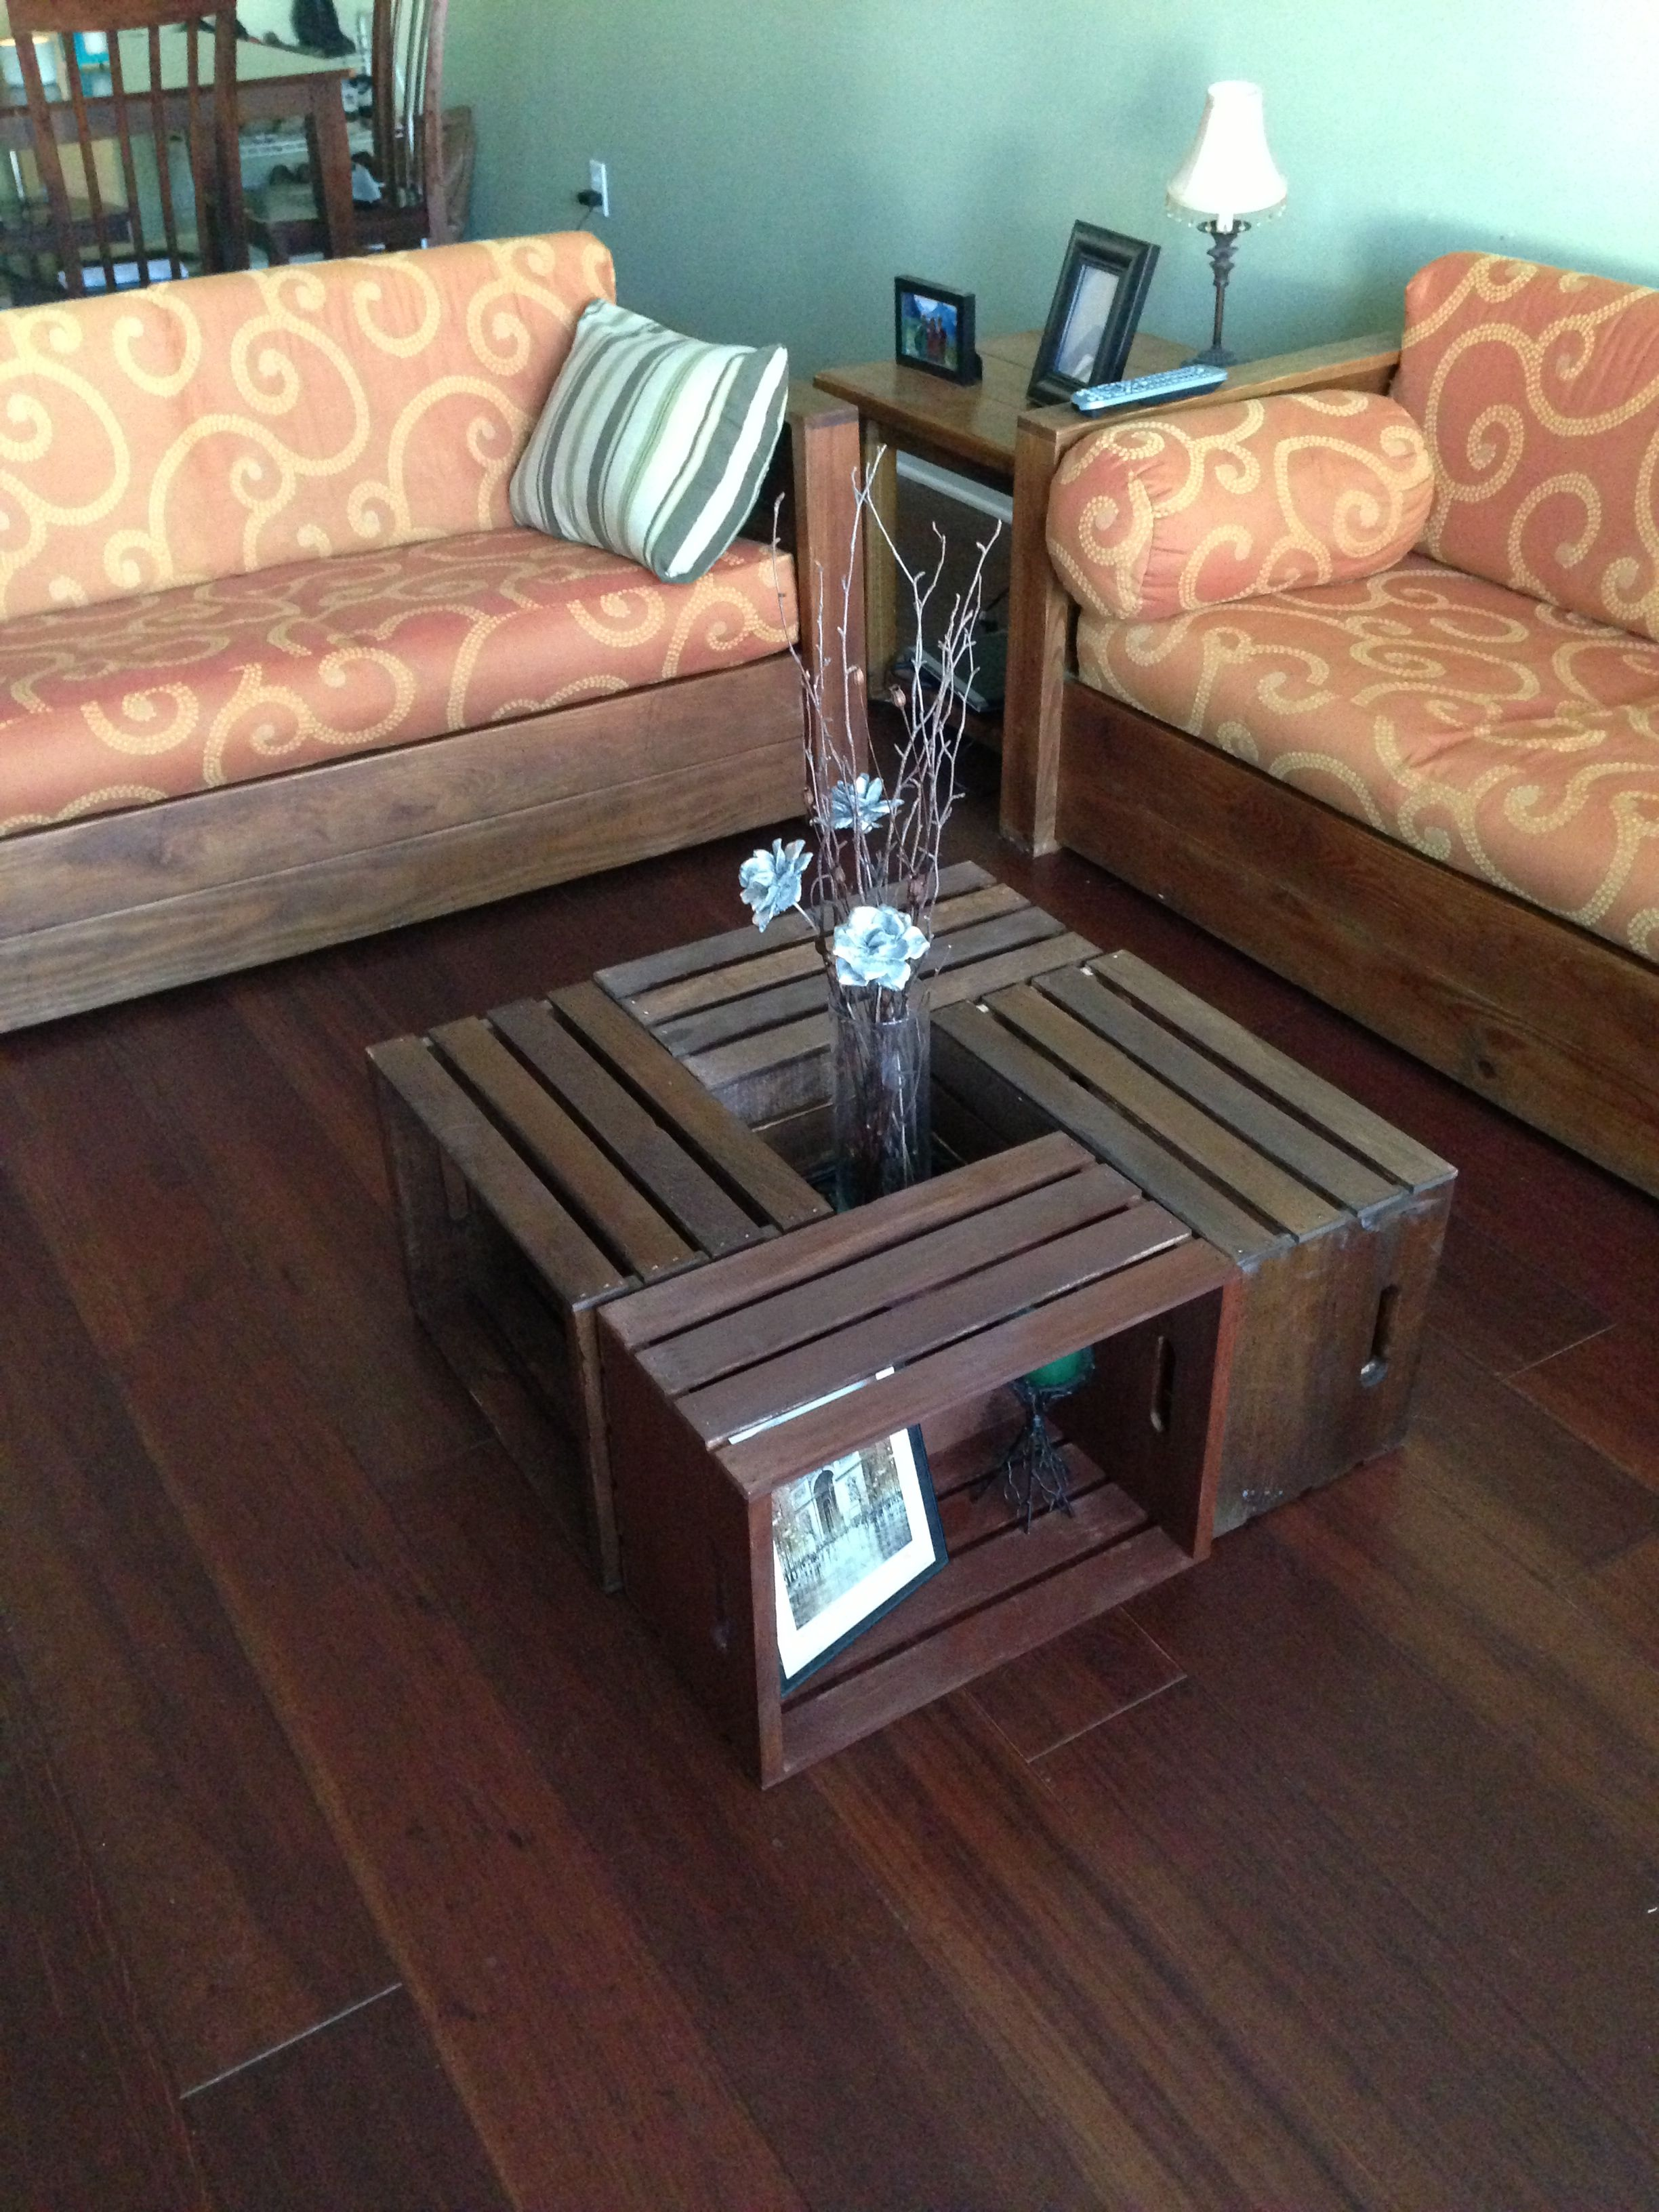 Diy living room table attach board to bottom for stable center